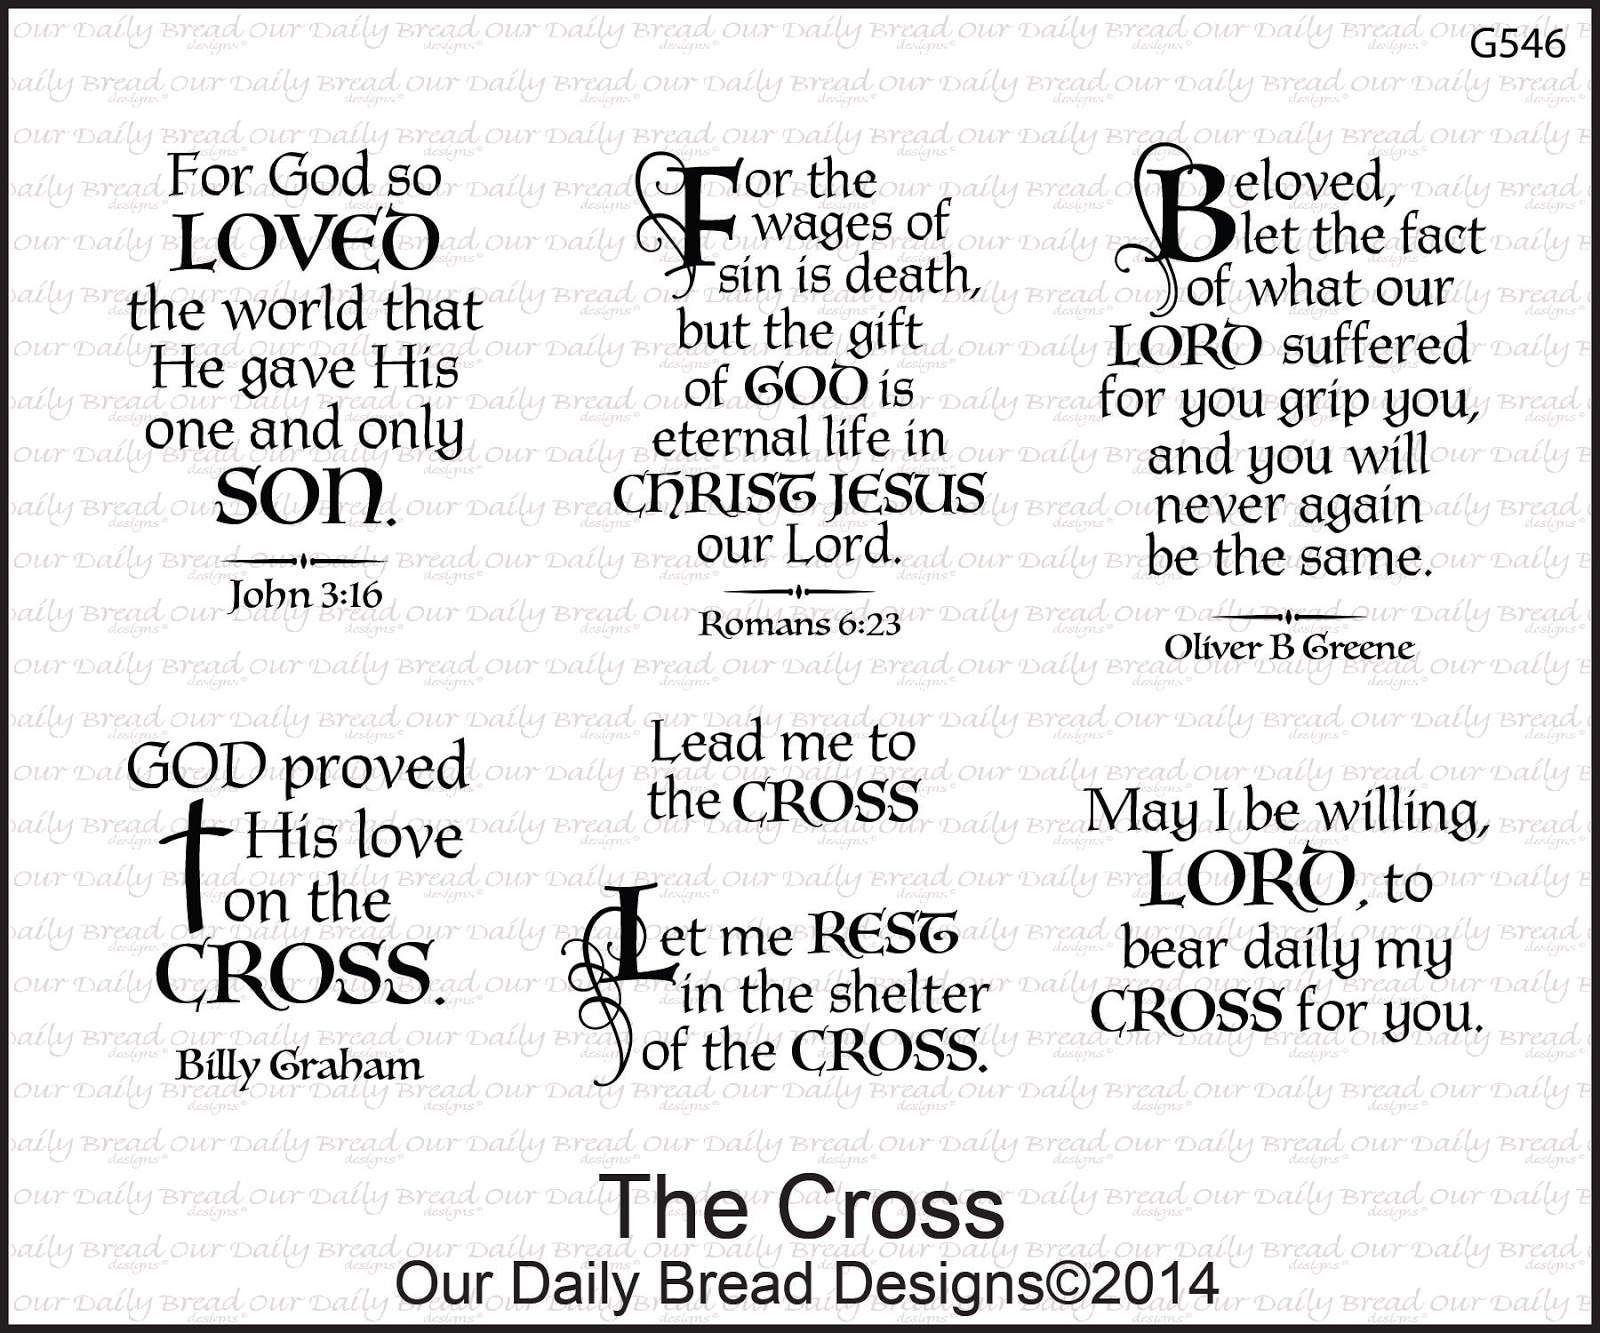 http://www.ourdailybreaddesigns.com/index.php/g546-the-cross.html